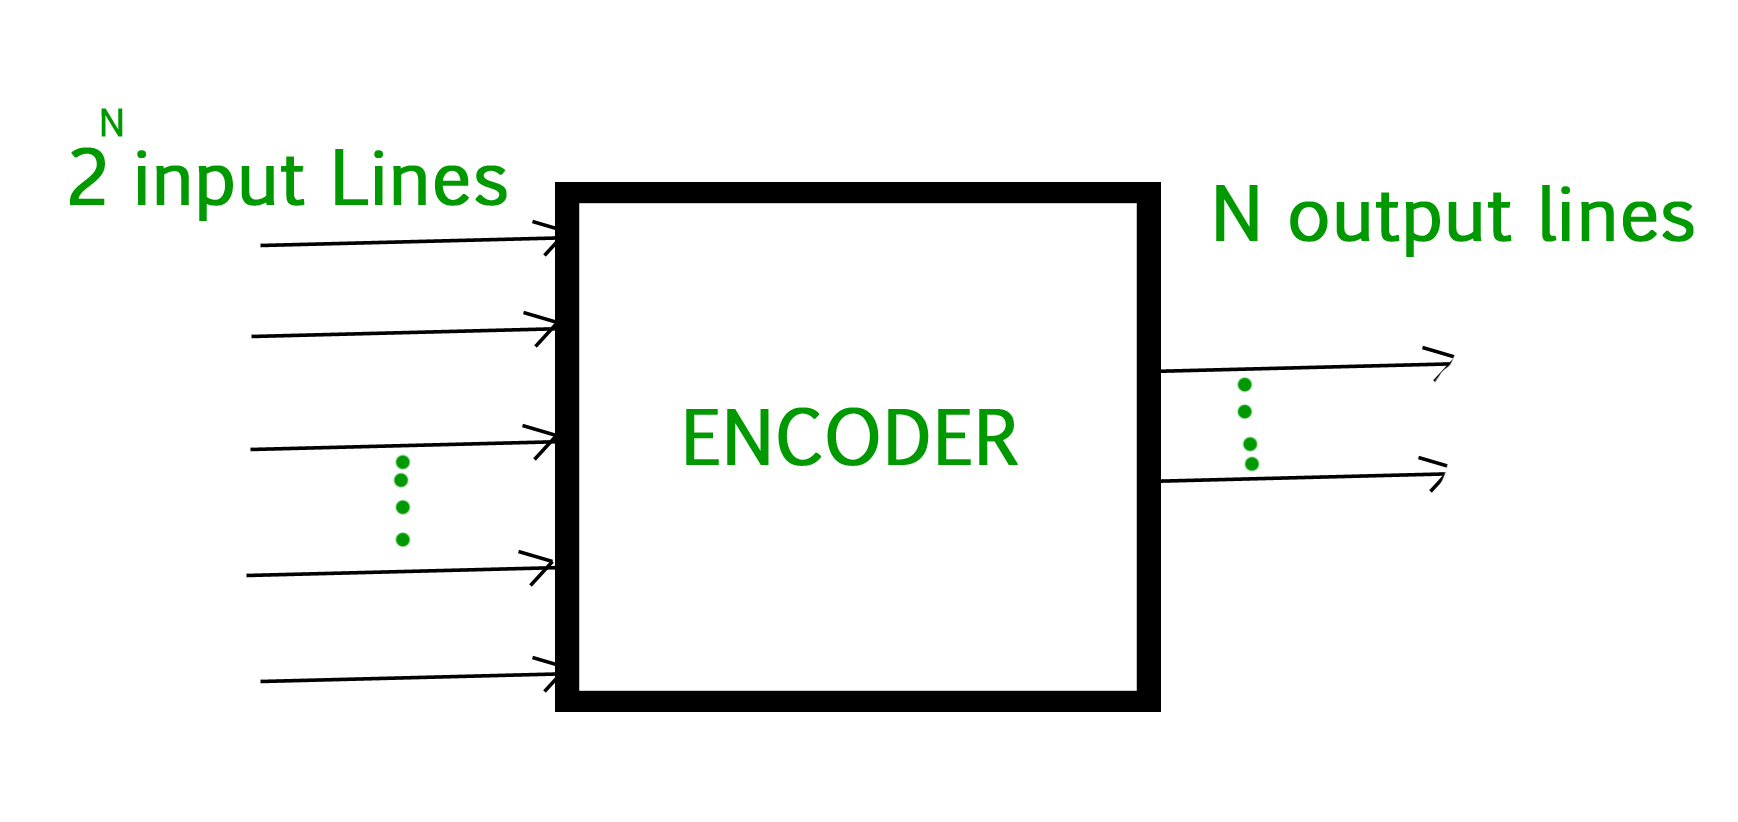 it will produce a binary code equivalent to the input, which is active  high  therefore, the encoder encodes 2^n input lines with 'n' bits